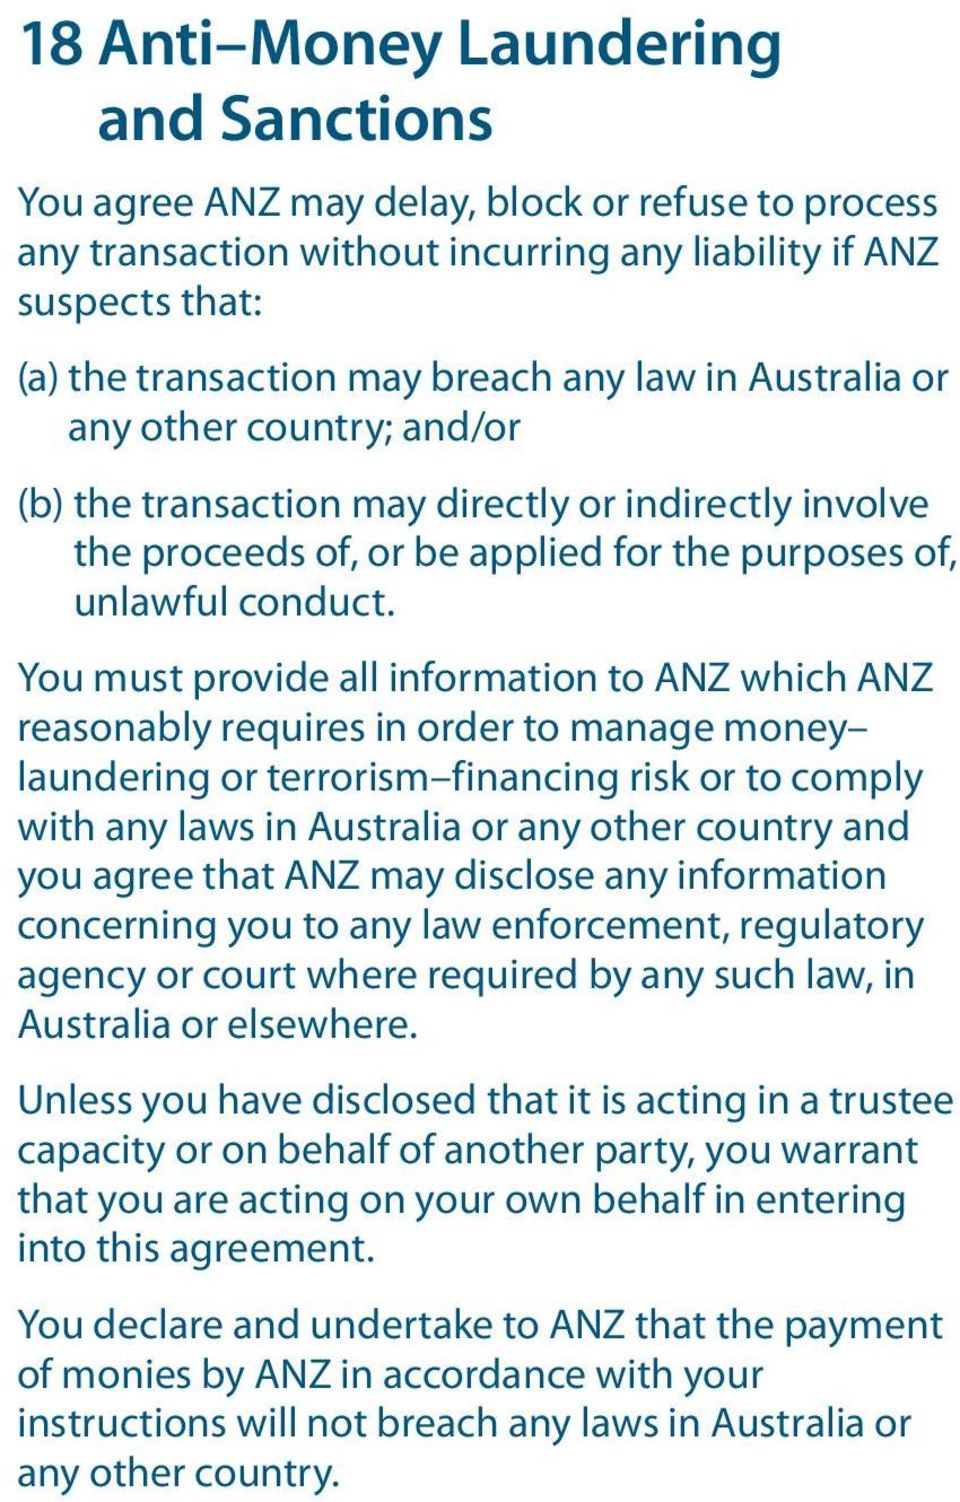 You must provide all information to ANZ which ANZ reasonably requires in order to manage money laundering or terrorism financing risk or to comply with any laws in Australia or any other country and